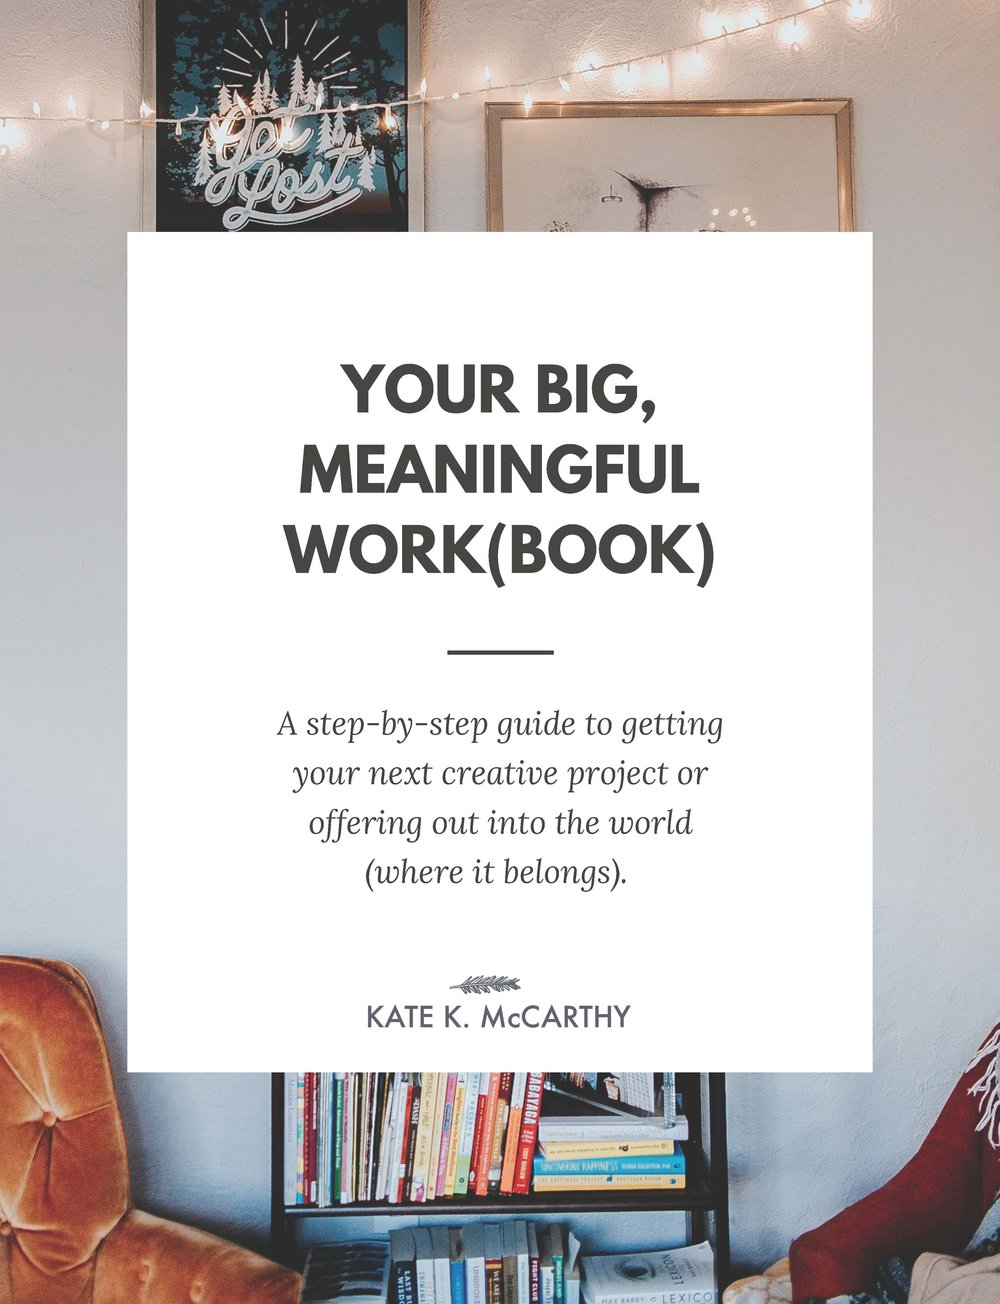 Your Big, Meaningful Workbook Cover by Kate K. McCarthy LLC